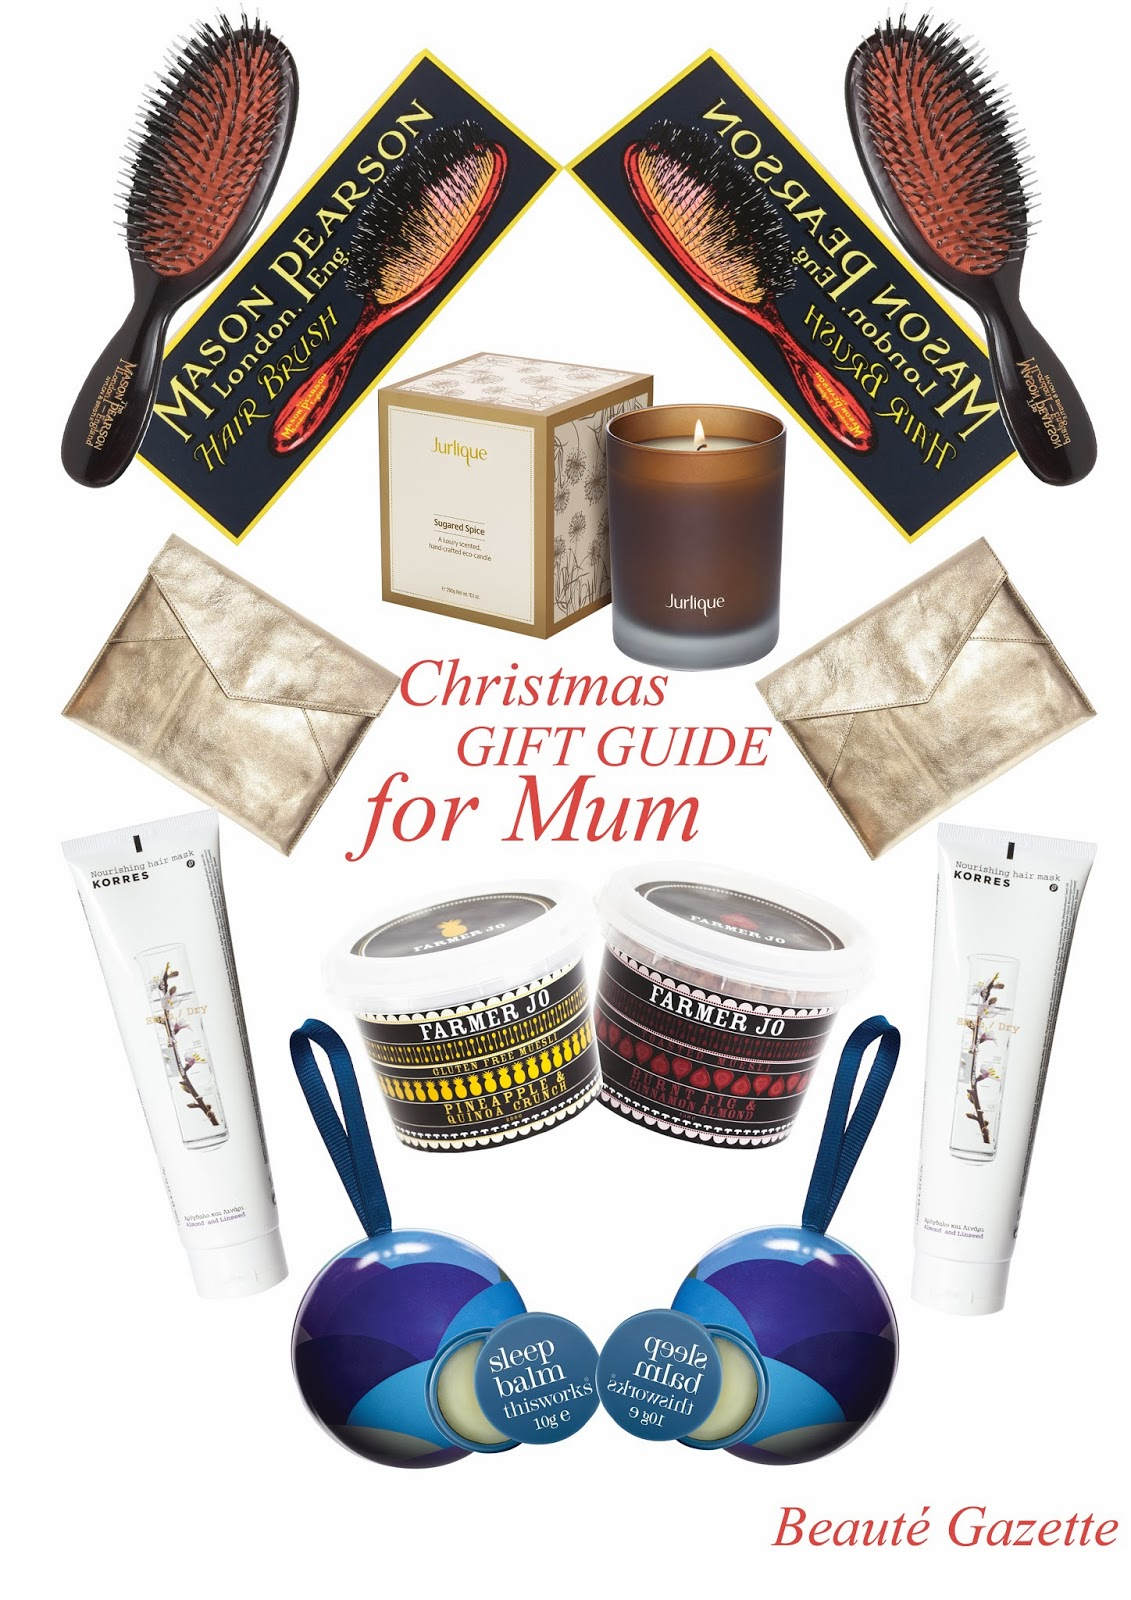 beauté gazette christmas gift guide best gifts for mothers who